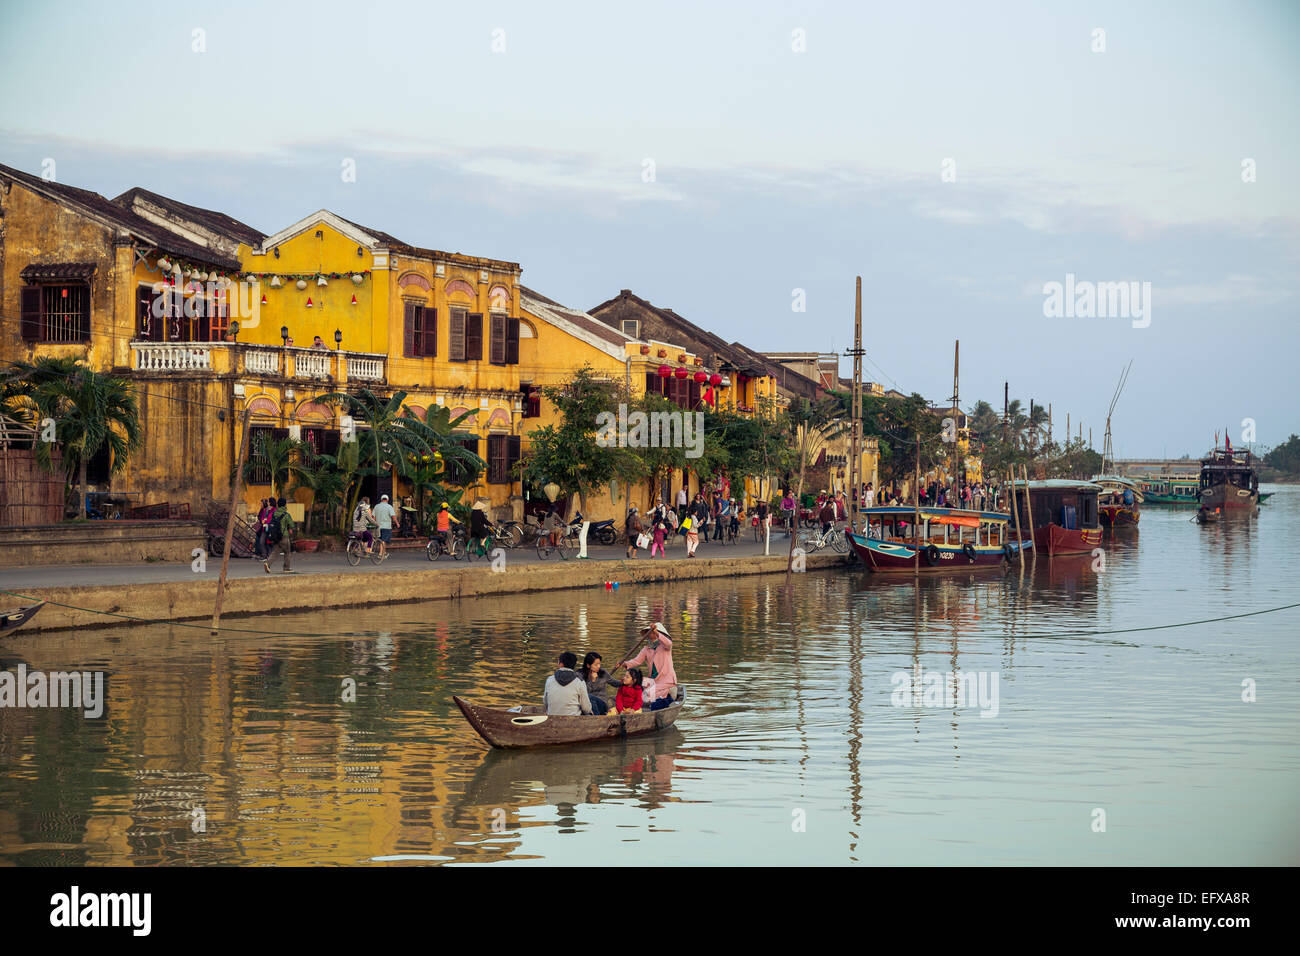 Boats at the Thu Bon river, Hoi An, Vietnam. - Stock Image